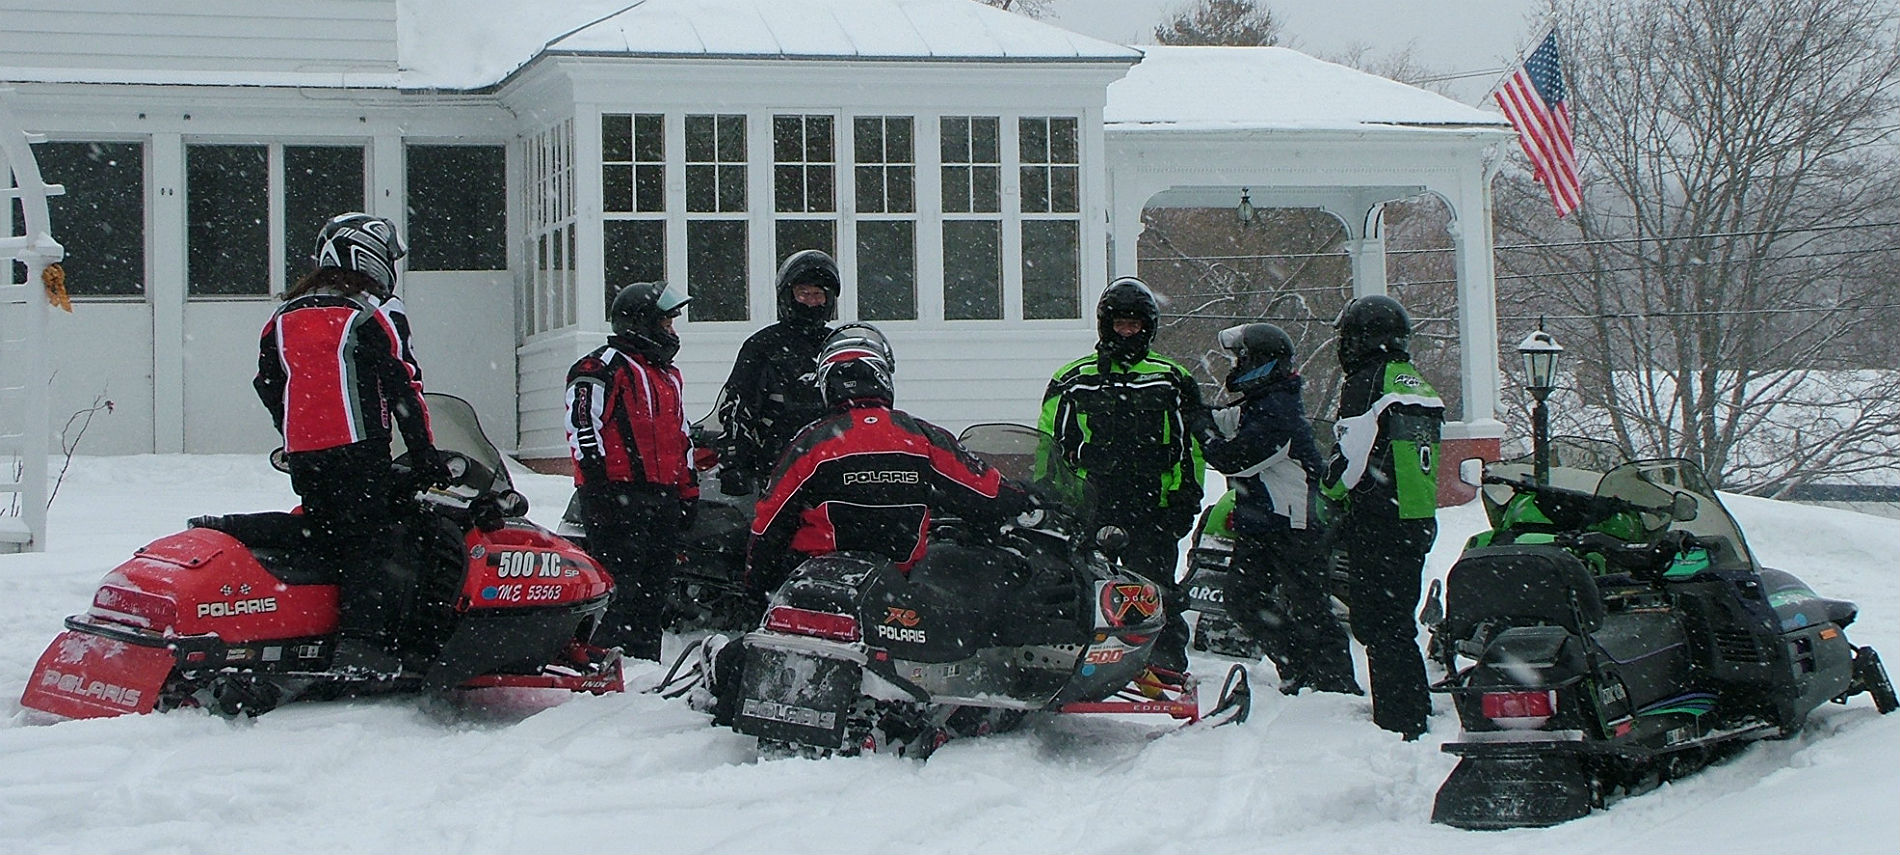 Group of snowmobilers in the snow with red and green machines and coats.